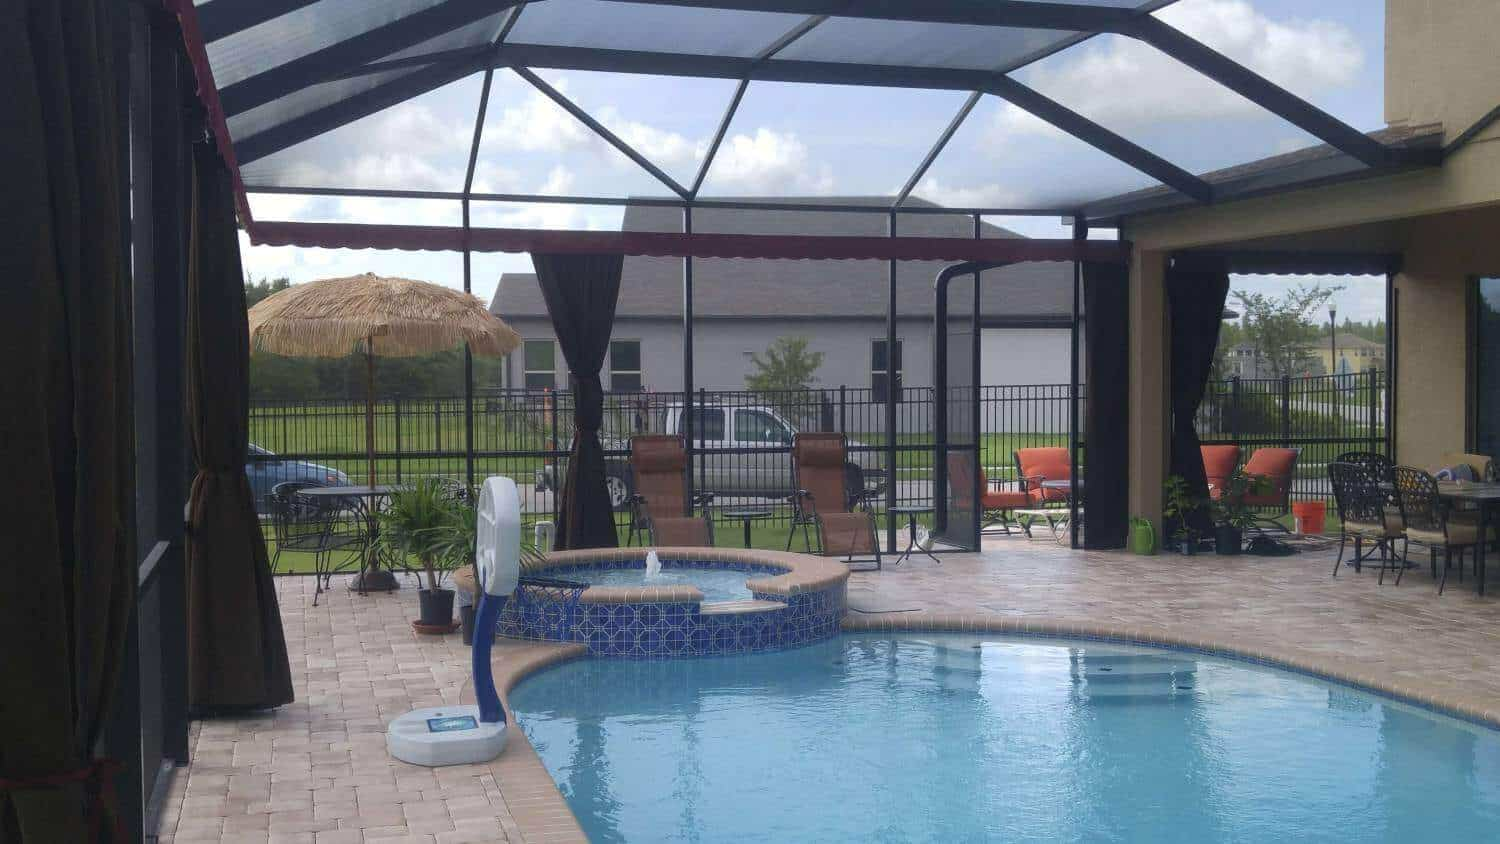 Privacy Outdoor Installed With Privacy Curtains In Swimming Pool And Patio